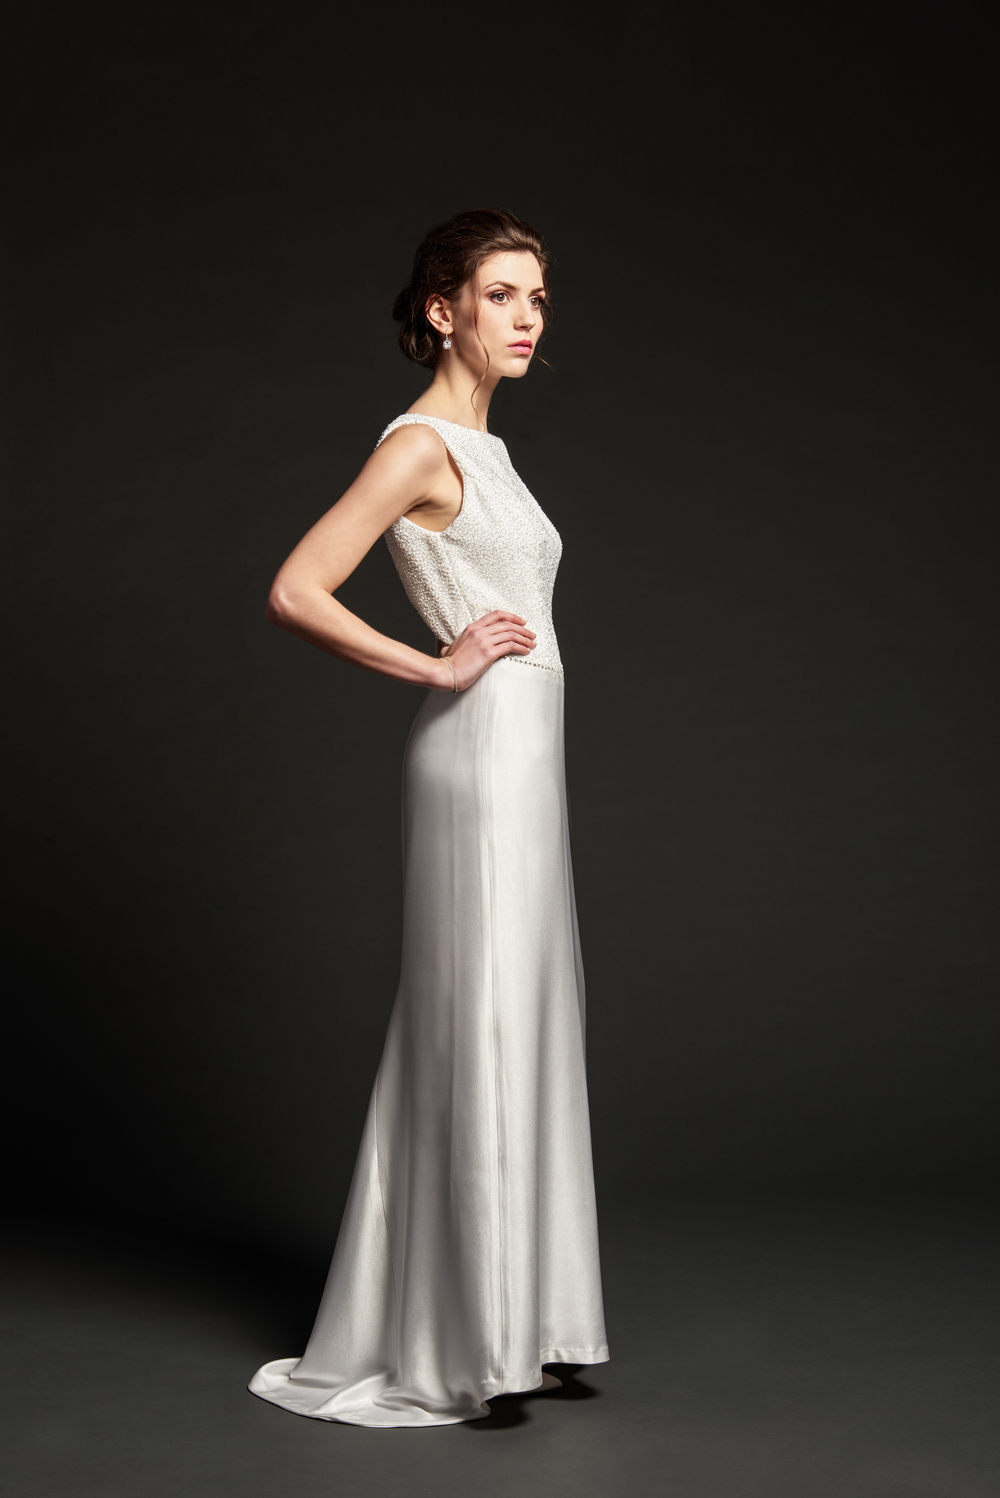 160213_GEMMA LEAKEY BRIDAL - DRESS 05-01.jpg